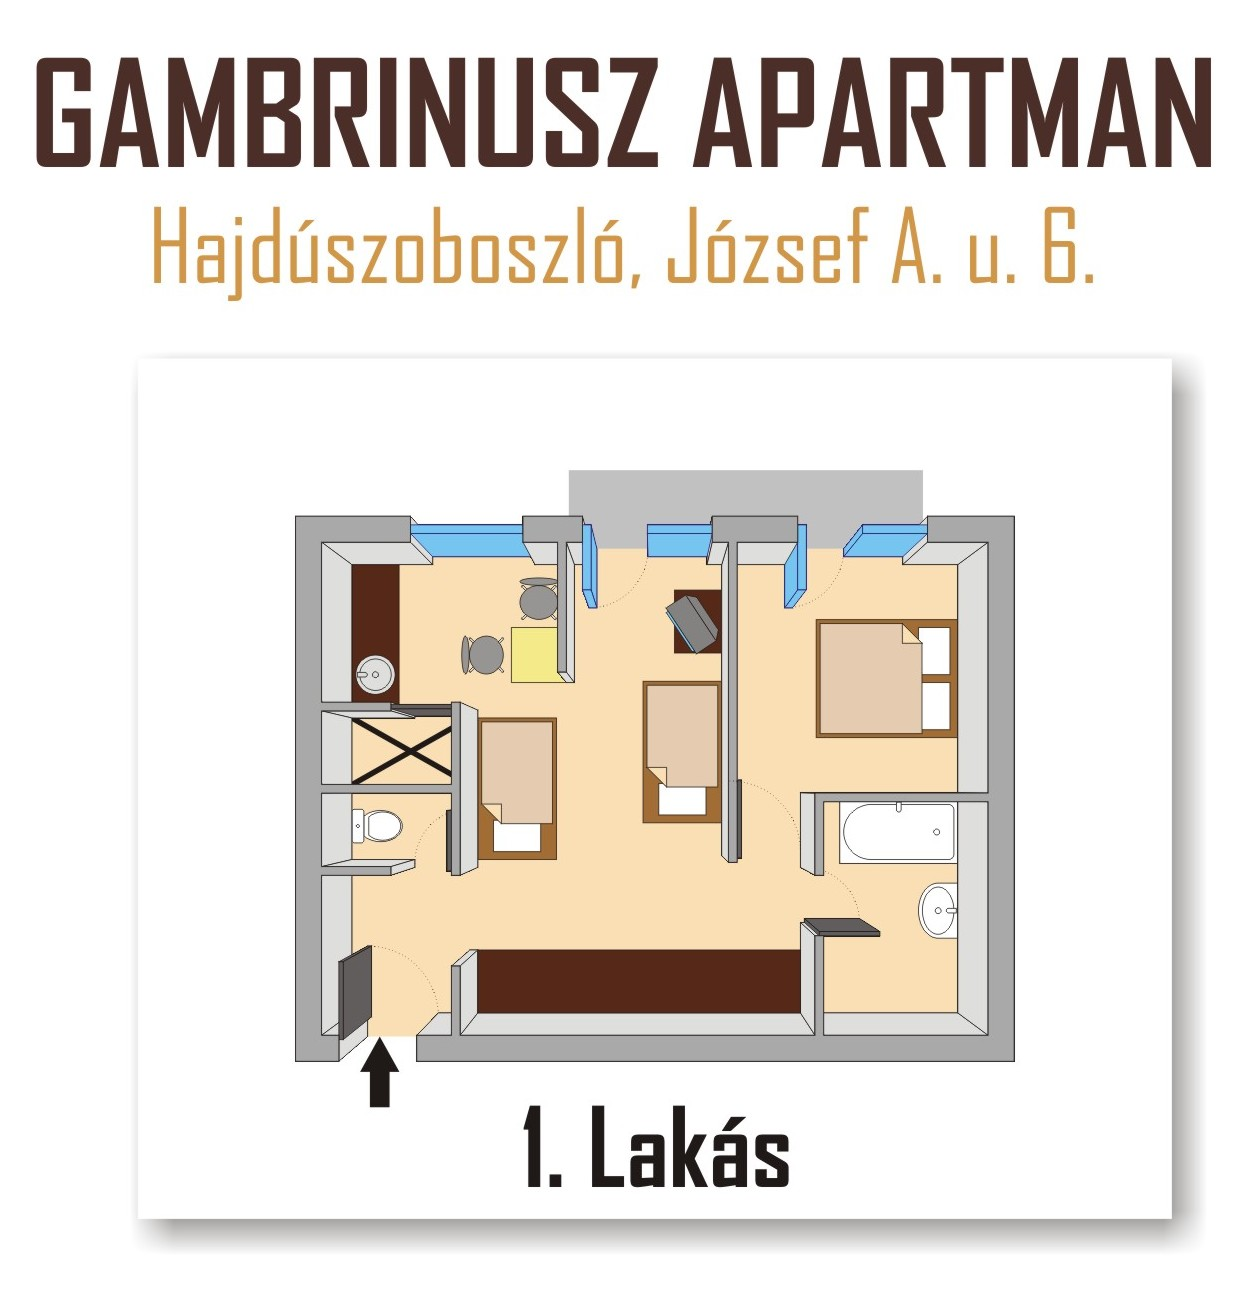 Gambrinusz Apartman Hajdszoboszl - 4 fs apartman